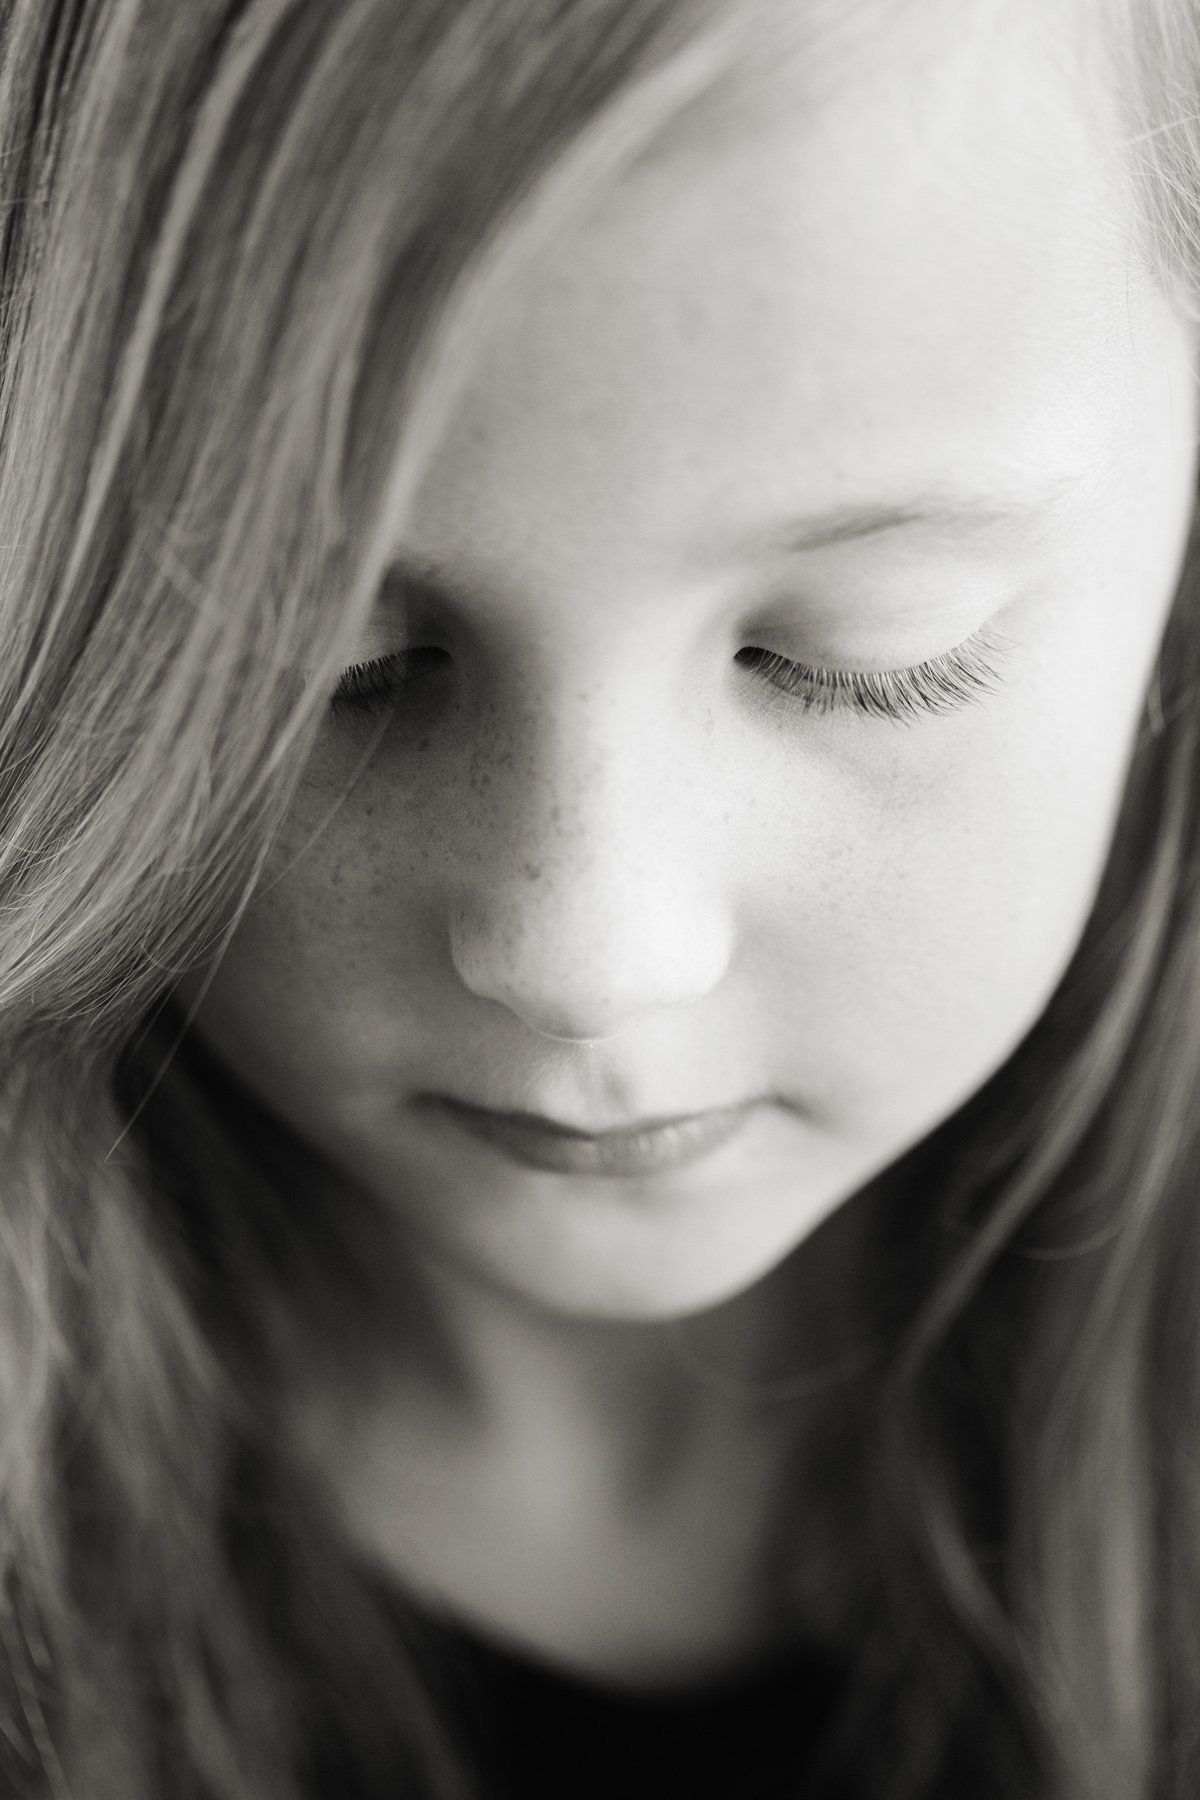 studio-child-photographer-st-louis-29Meek-19_10172015bw